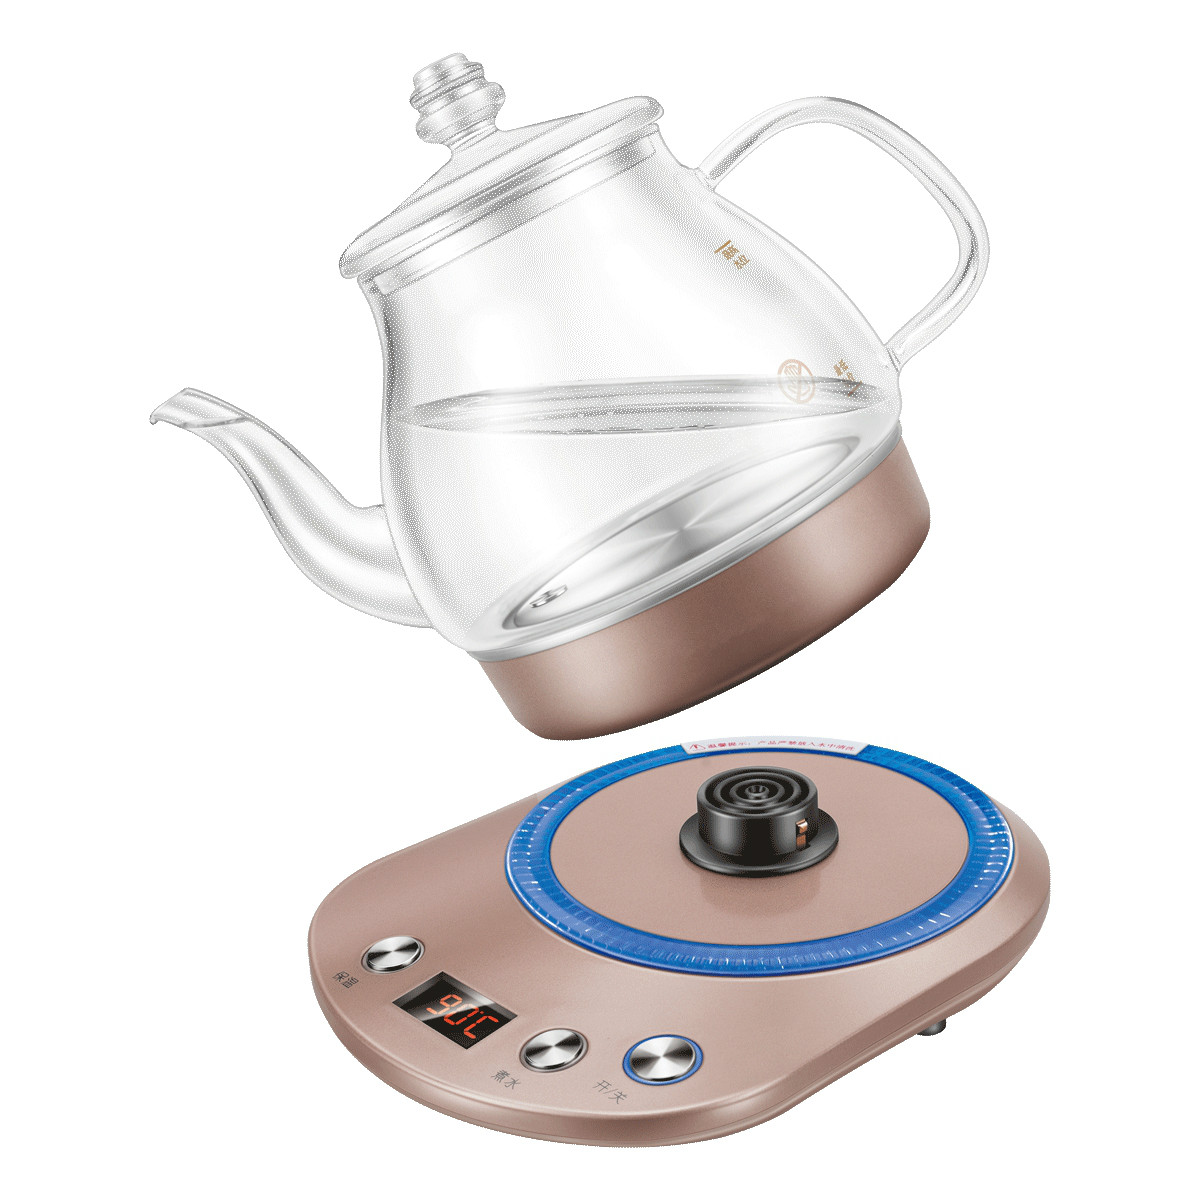 Electric kettle The electric has a multi-function automatic power failure glass boiler